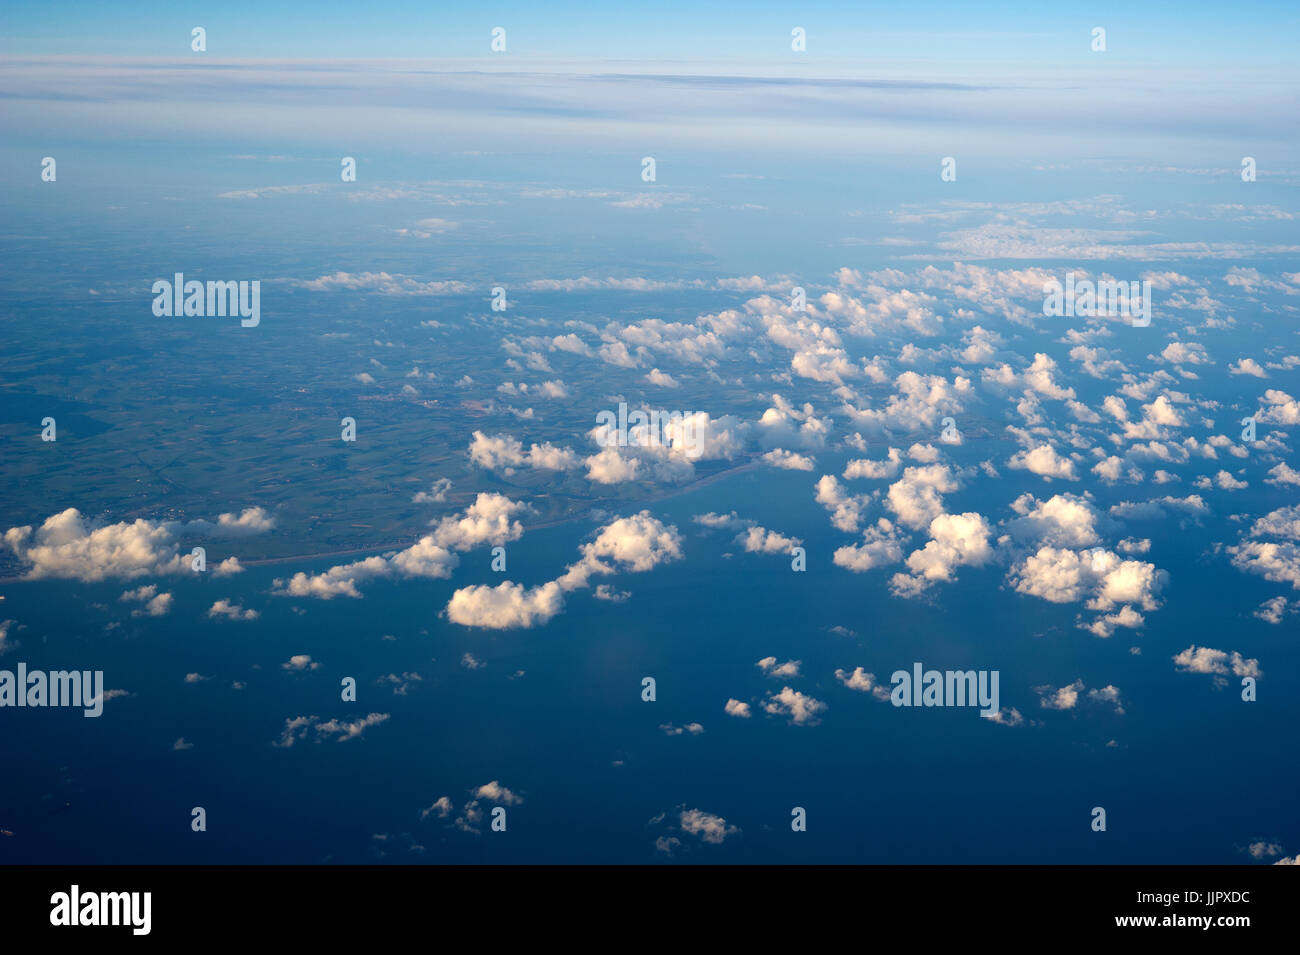 View of clouds in the sky and an ocean shore from an airplane window Stock Photo